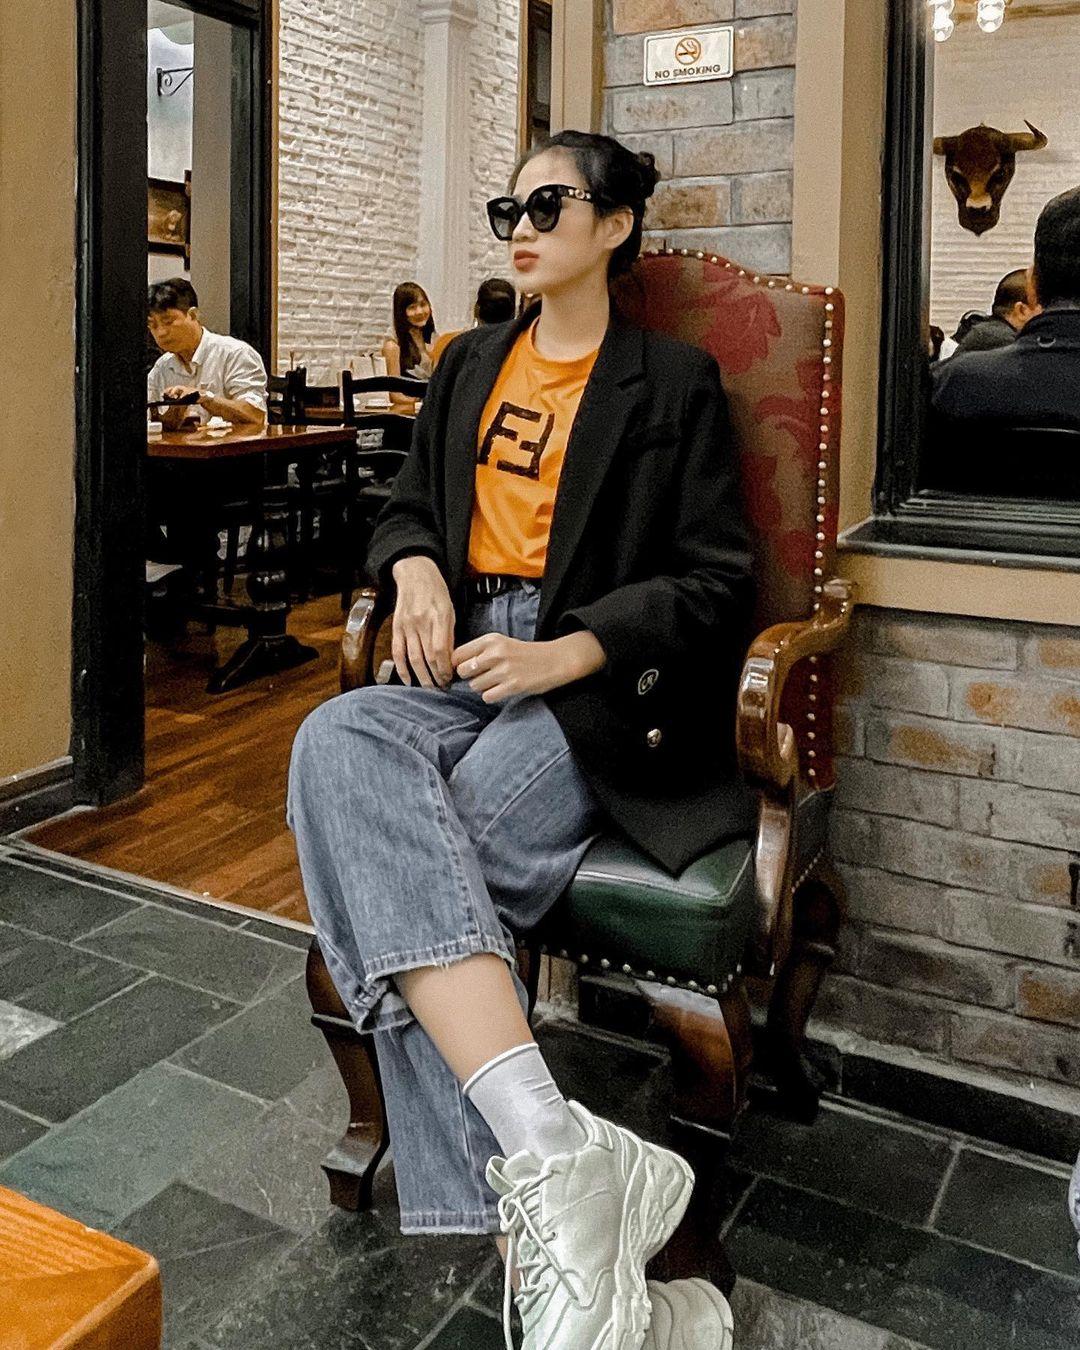 Miss Do Thi Ha uses more luxury brands, but wears only one glass - Photo 4.